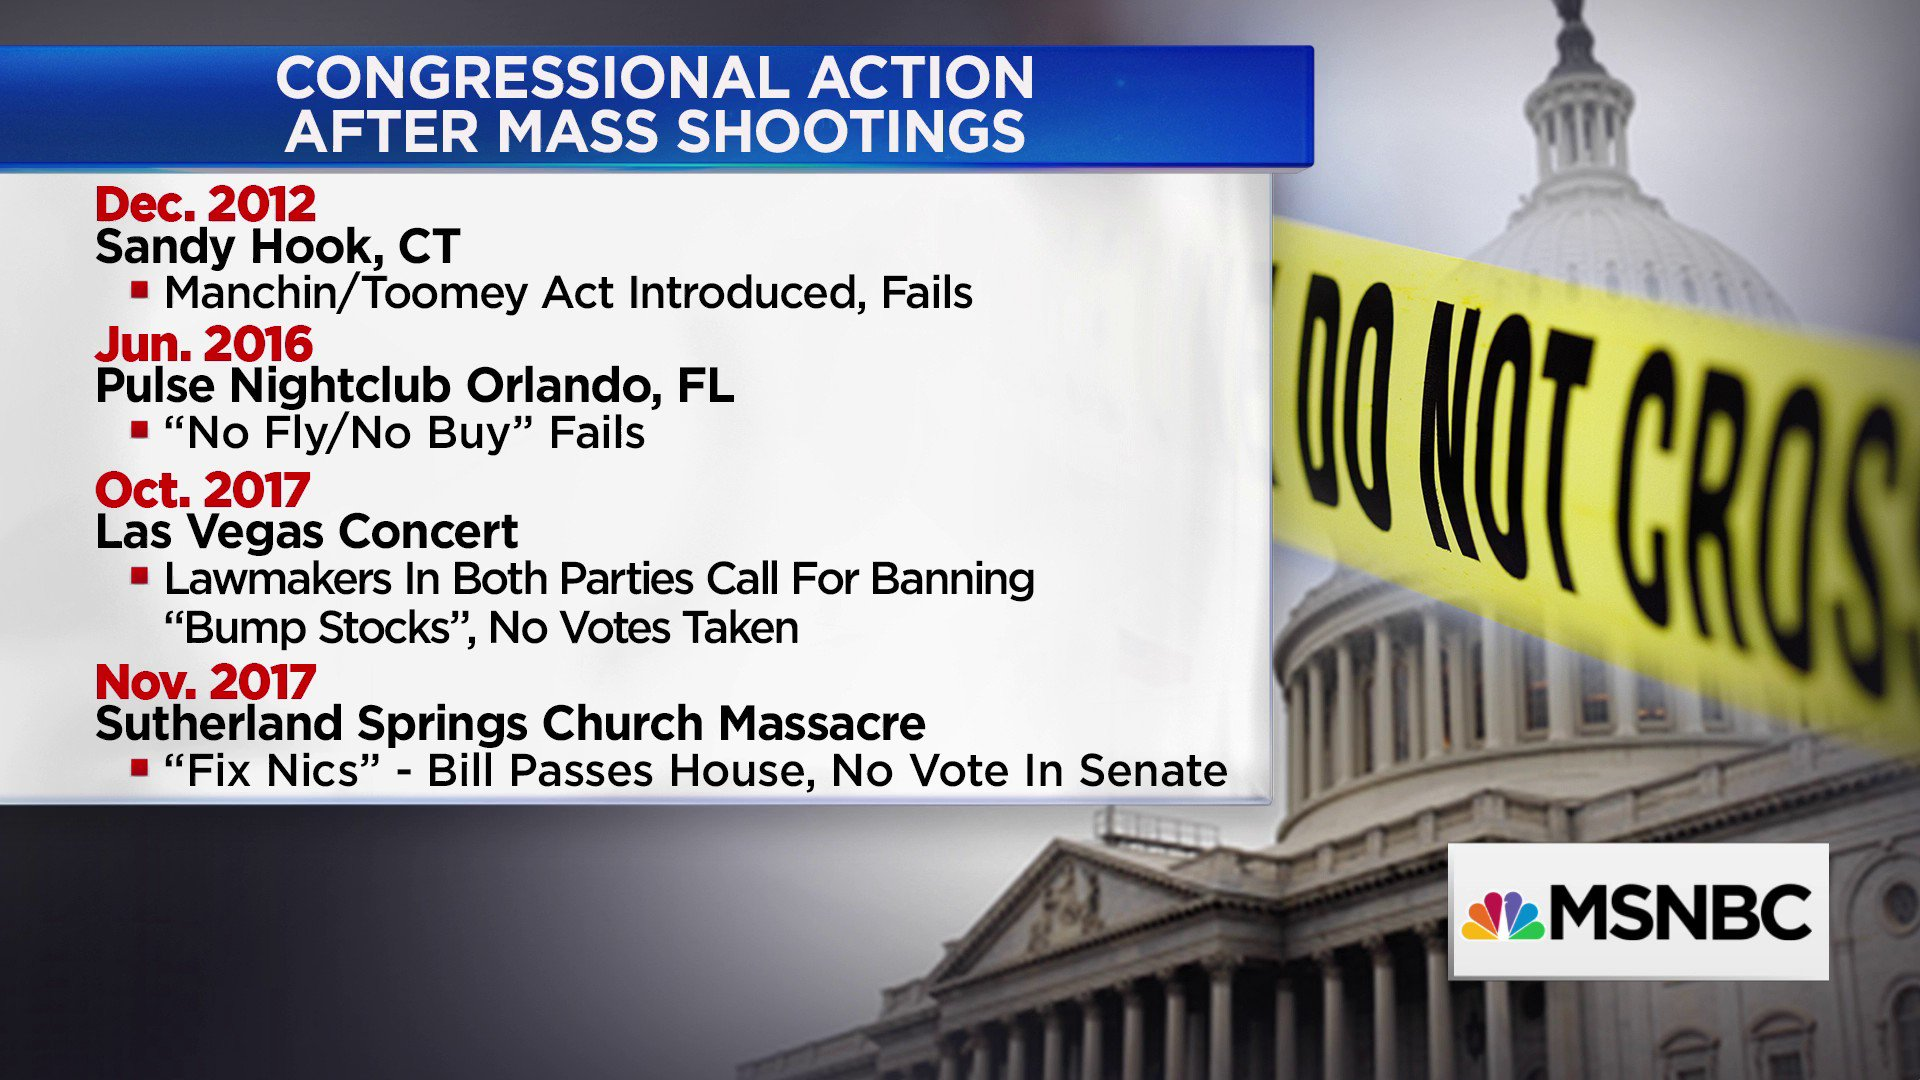 Here's a look at the Congressional actions proposed after mass shootings and how lawmakers voted https://t.co/EqCZCPjU3l